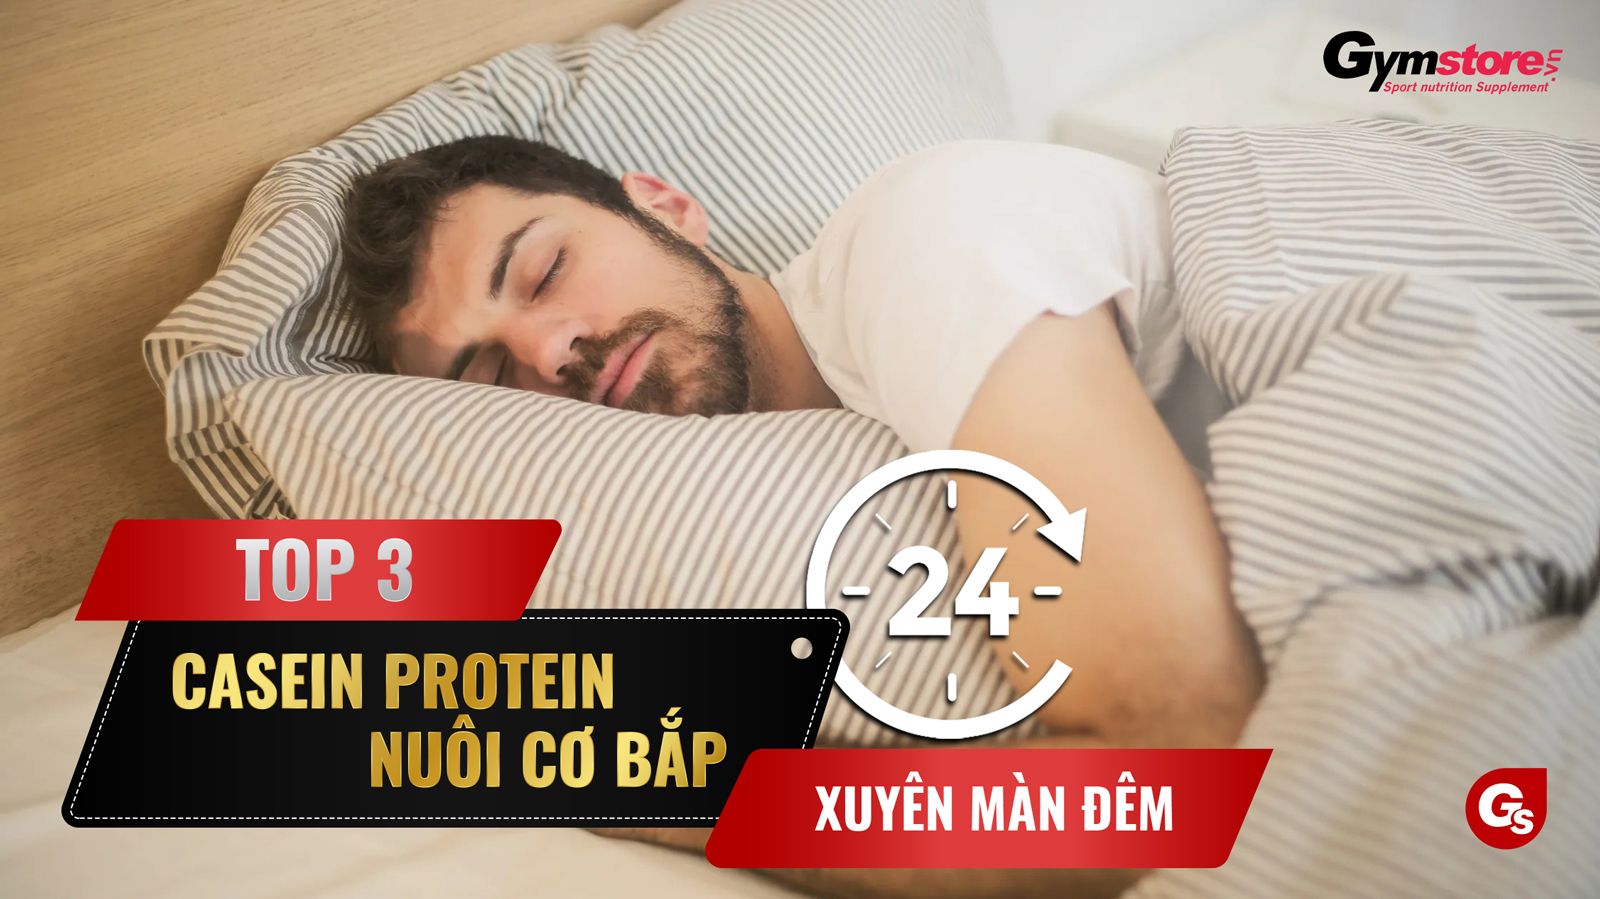 top-3-casein-protein-nuoi-co-ban-dem-tot-nhat-hien-nay-gymstore